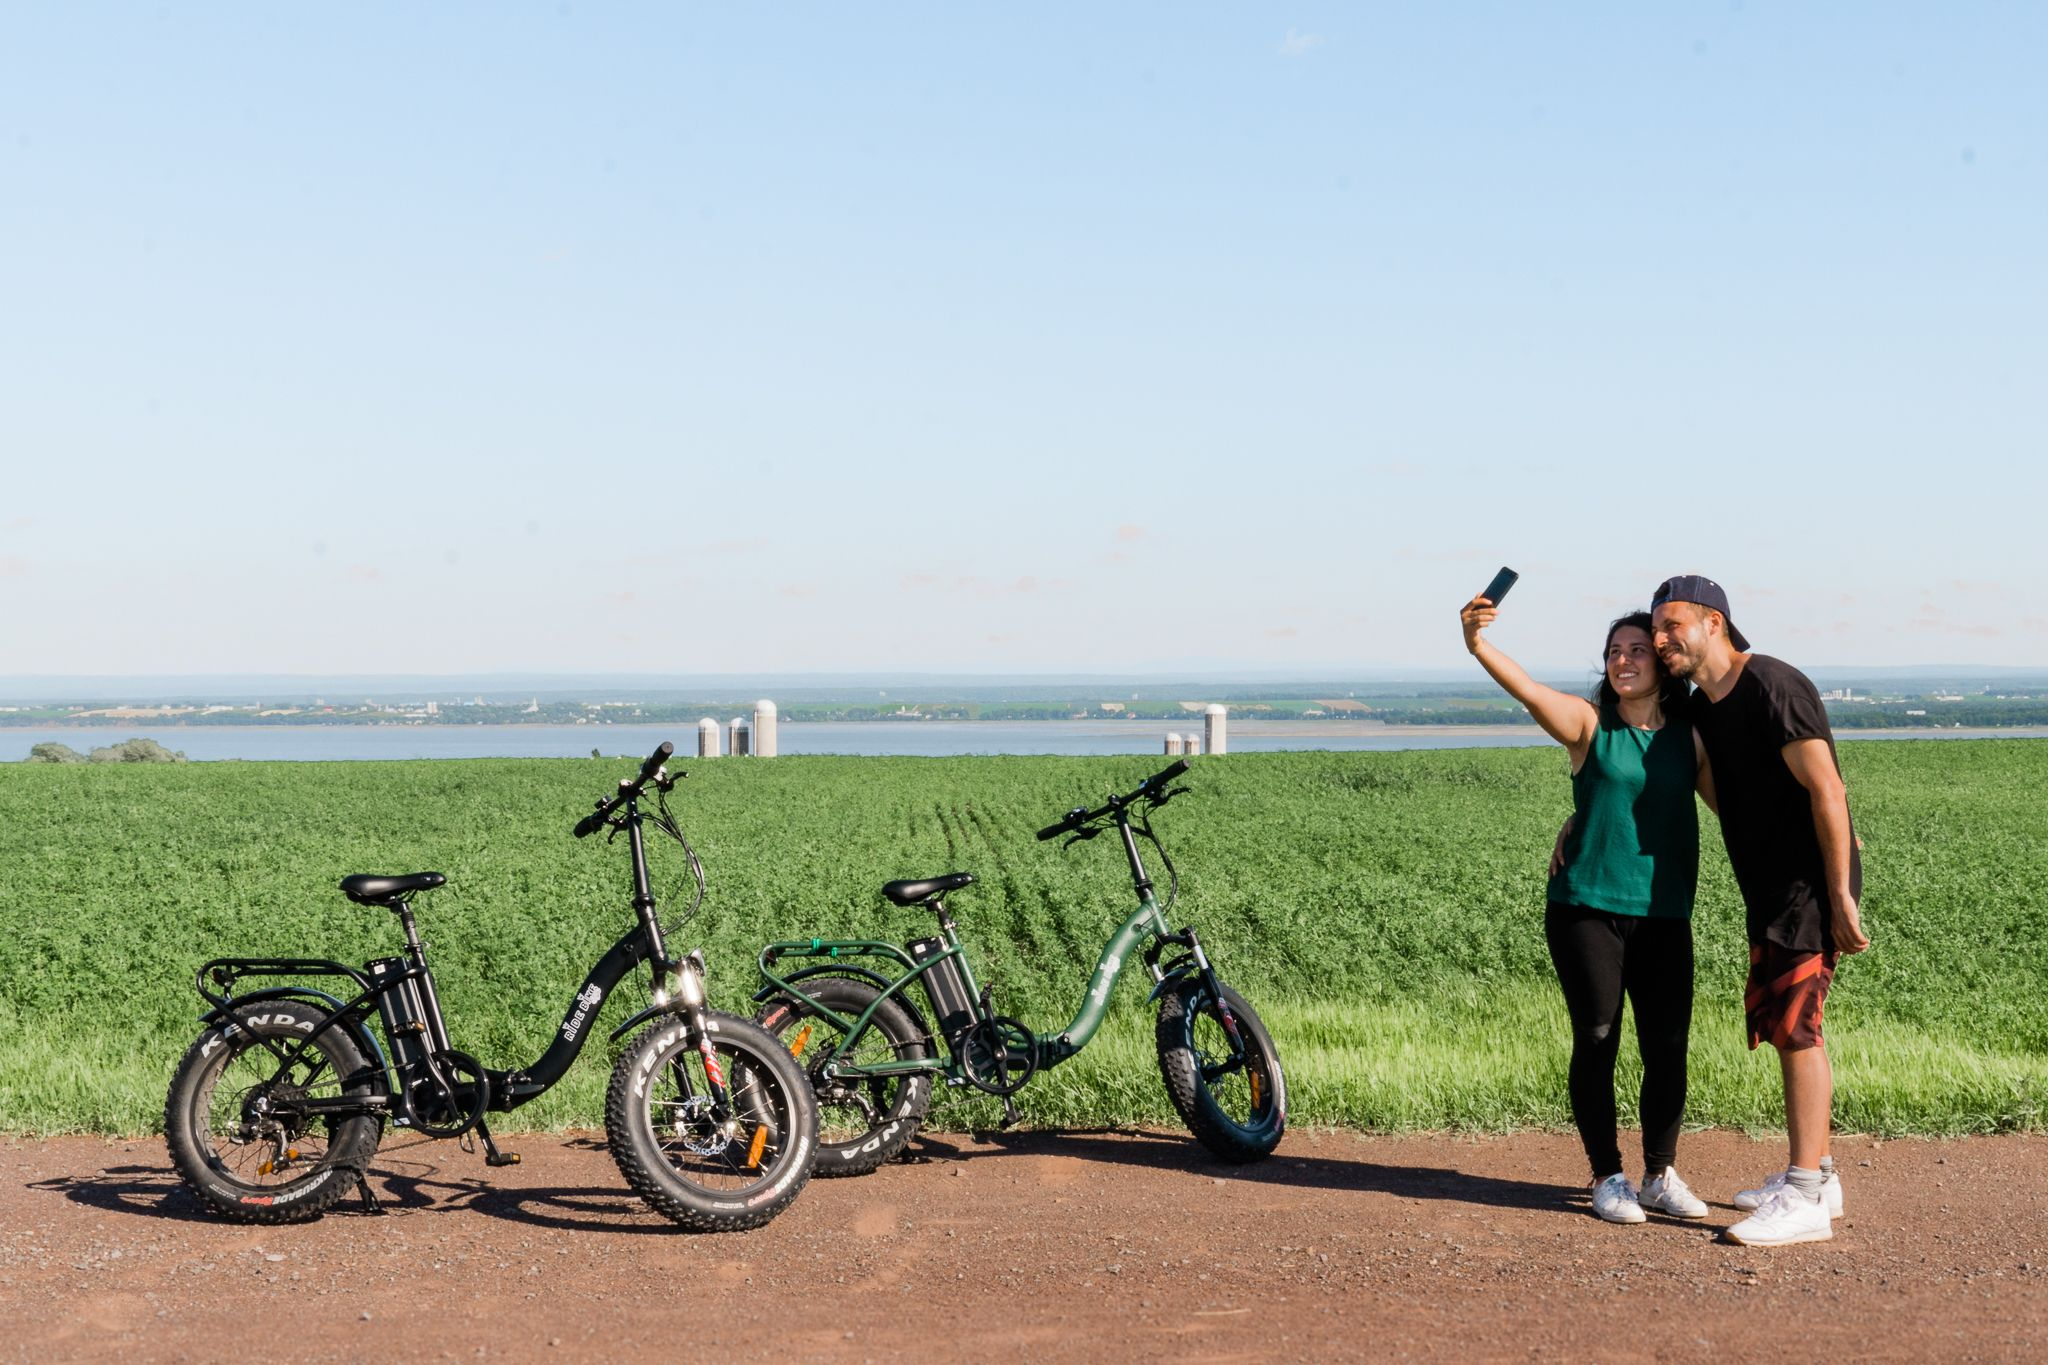 Rent electric bikes and cycle on Ile d'Orleans with ease!